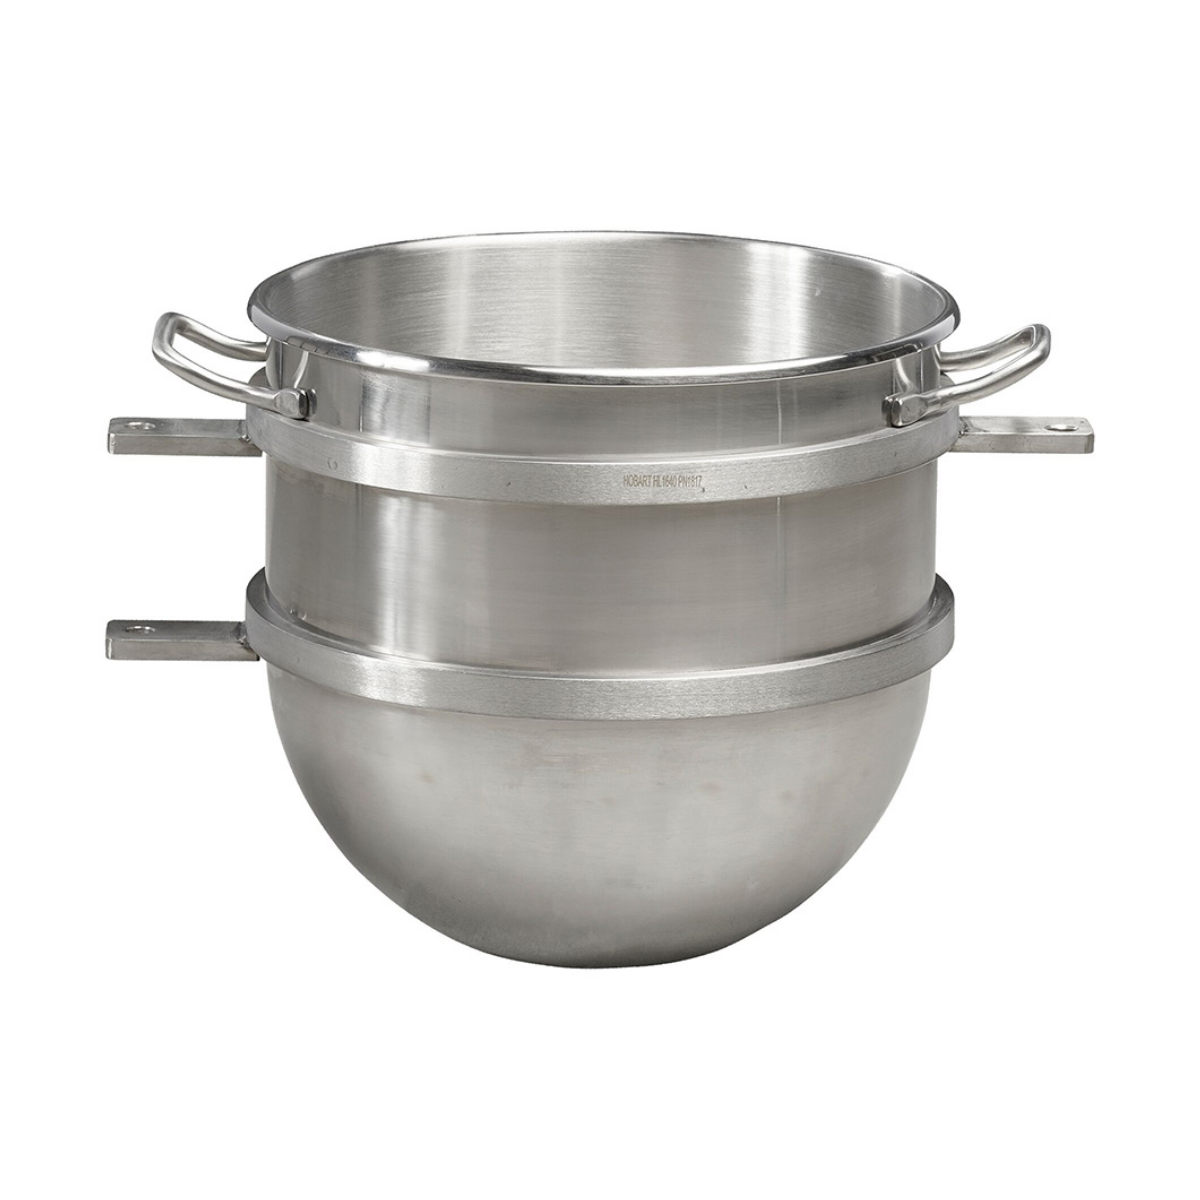 Hobart BOWL-HL60 Mixer Bowl